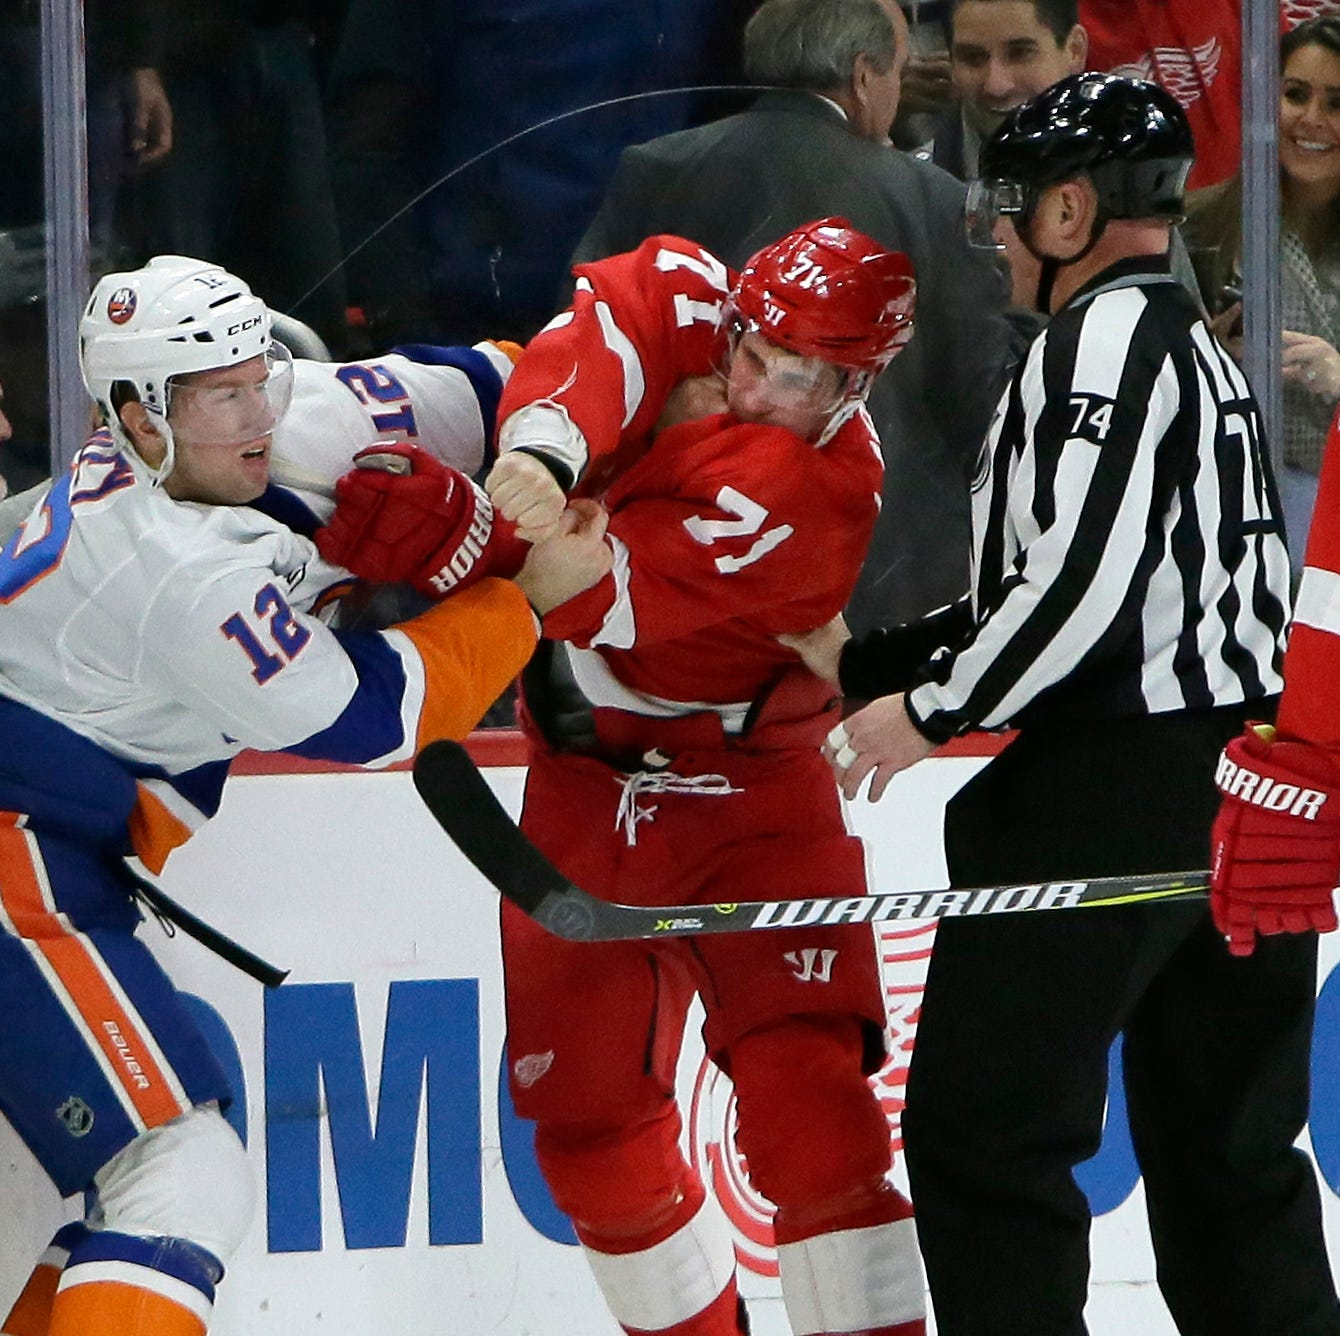 Dylan Larkin fighting benefits the Detroit Red Wings. Here's why